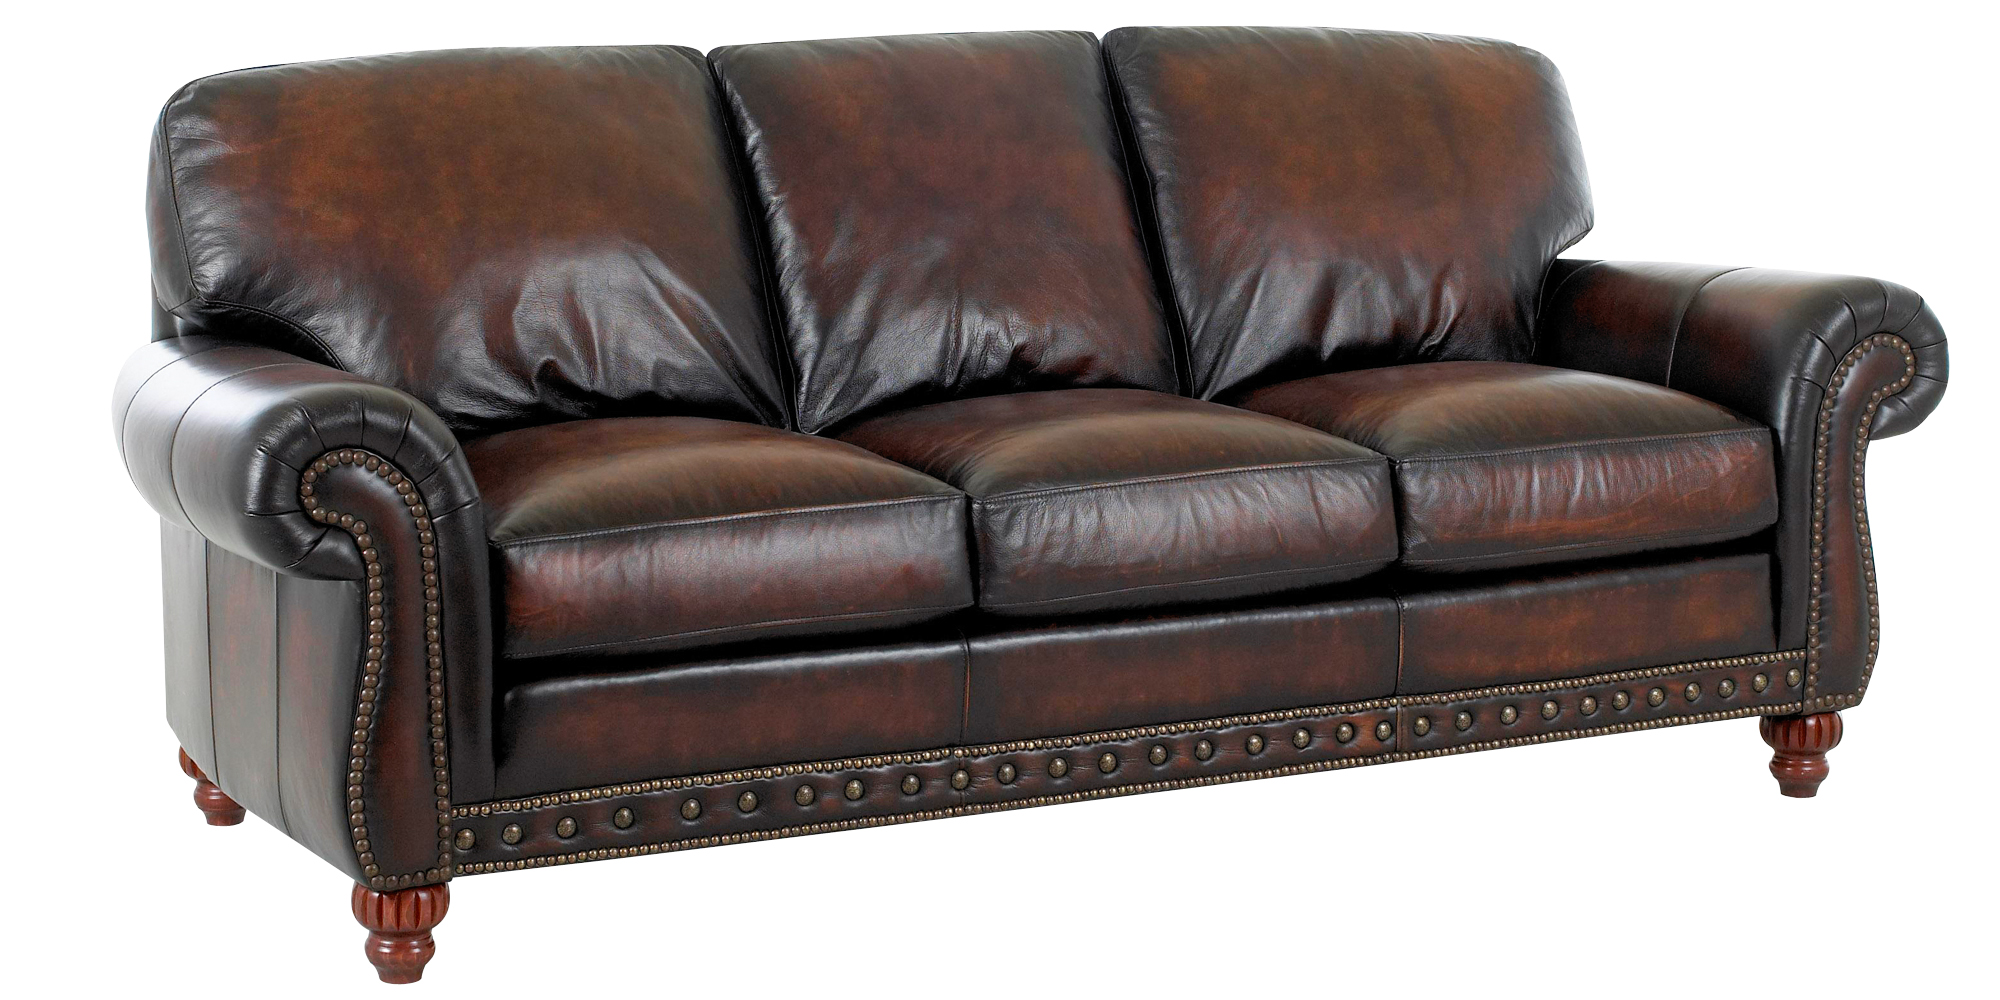 Leather Furniture Gerard Old World European Set Oorbxtm